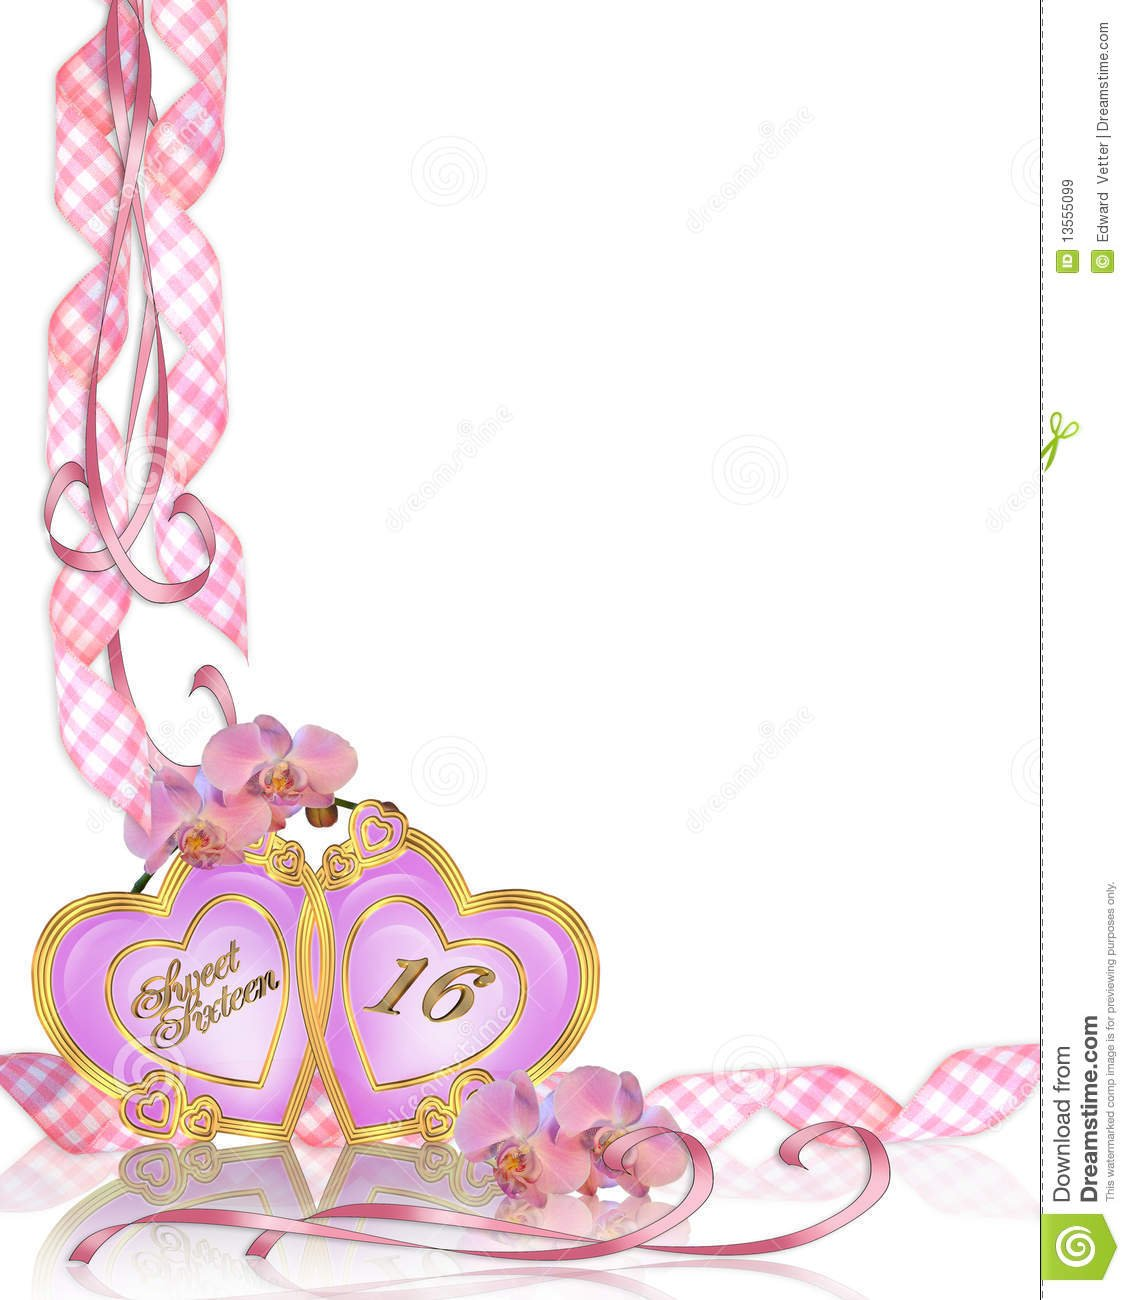 Sweet 16 Birthday Invitation Border Stock Illustration